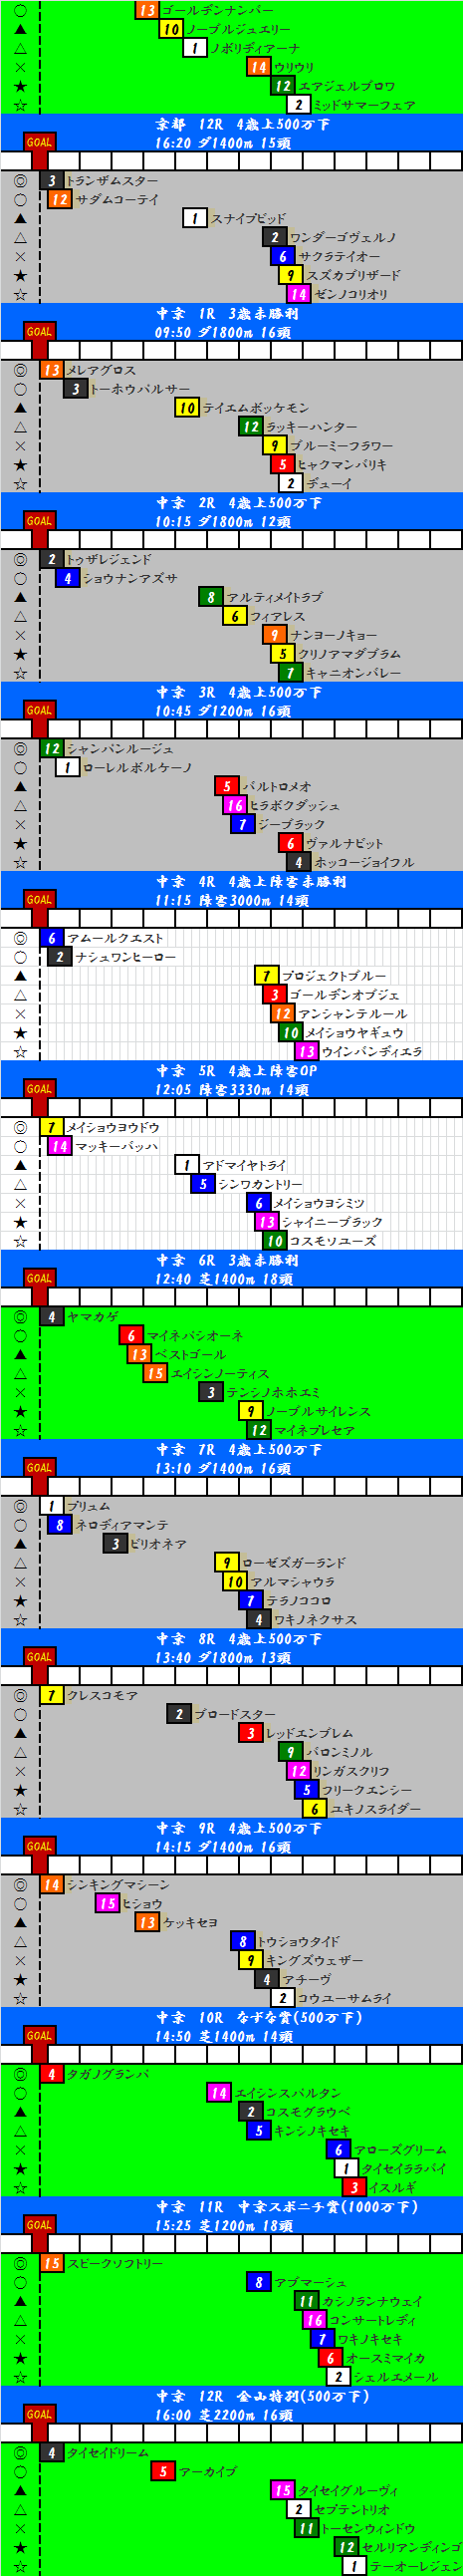 201401252.png